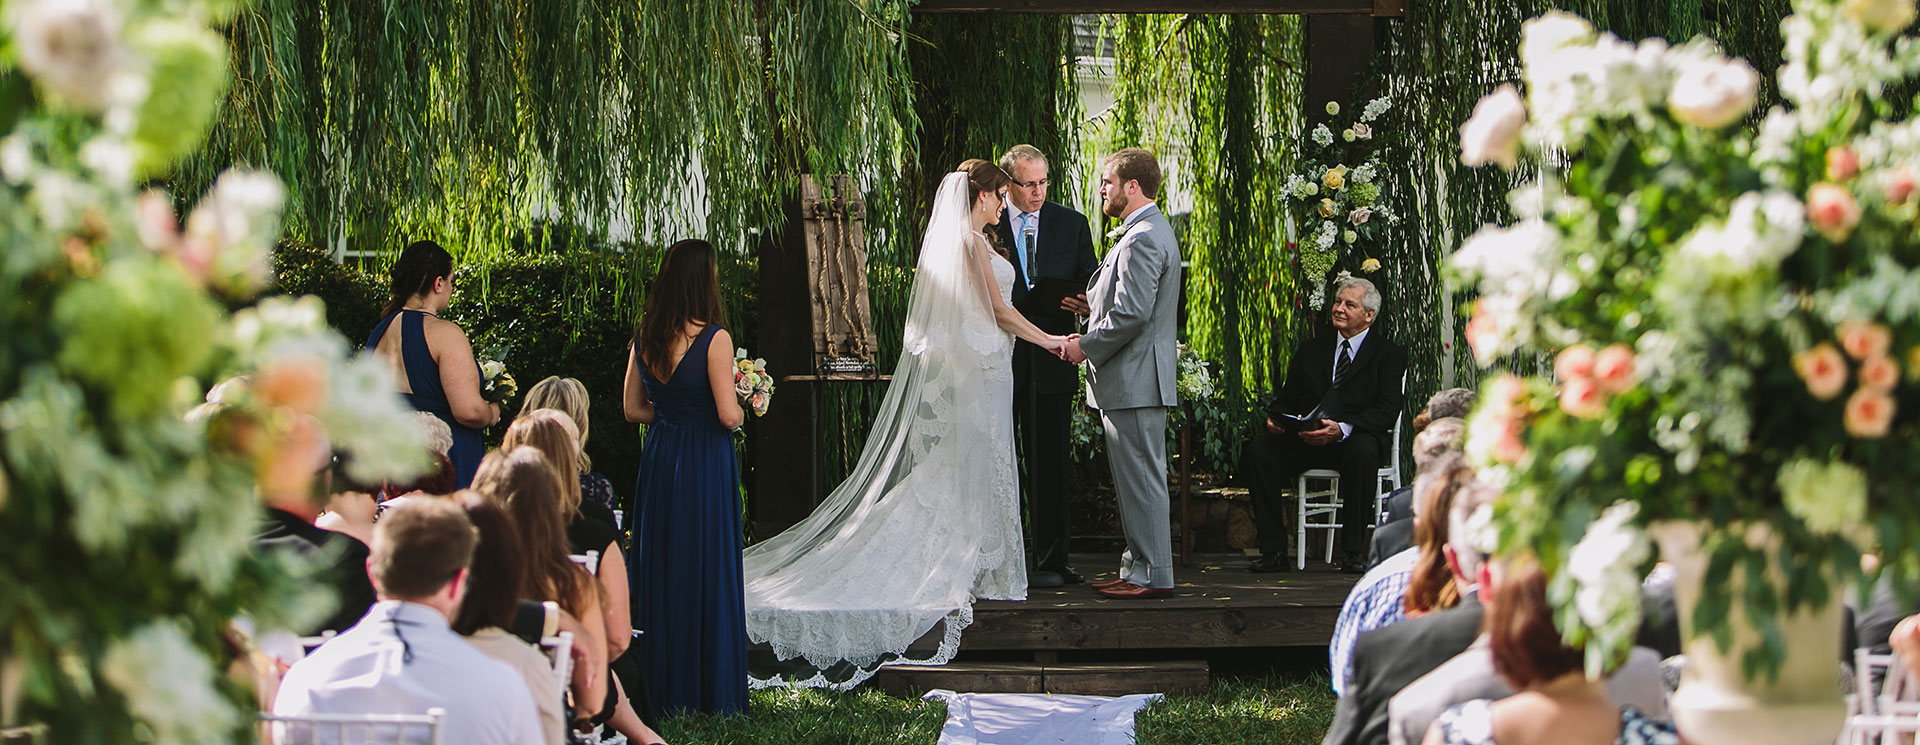 Outdoor Wedding Ceremonies at Bell Mill Mansion